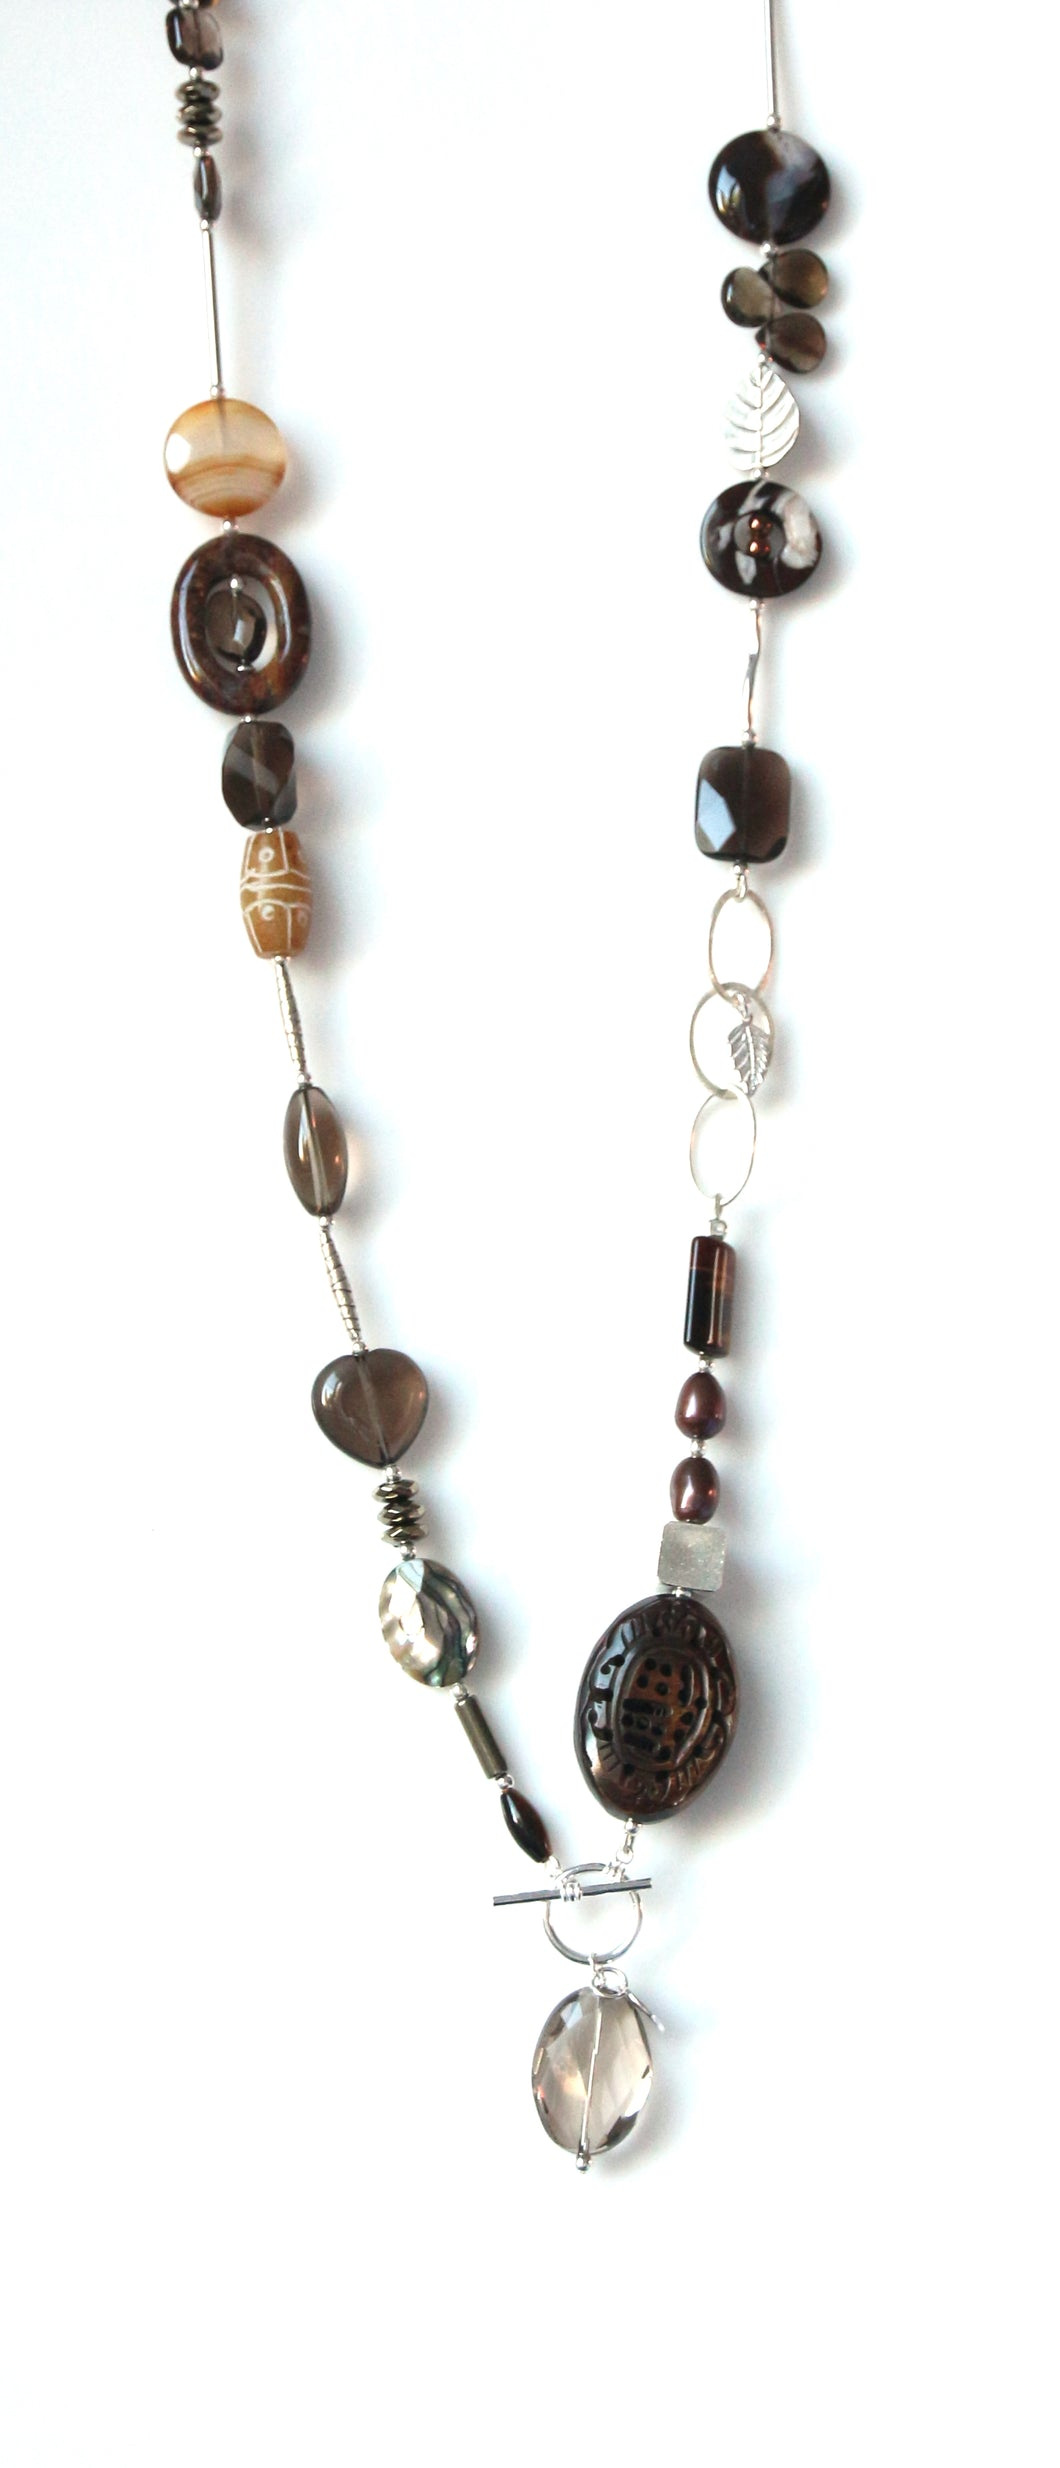 Australian Handmade Brown Fob Necklace with Smoky Quartz Agate Tigers Eye Tibetan Bead and Sterling Silver